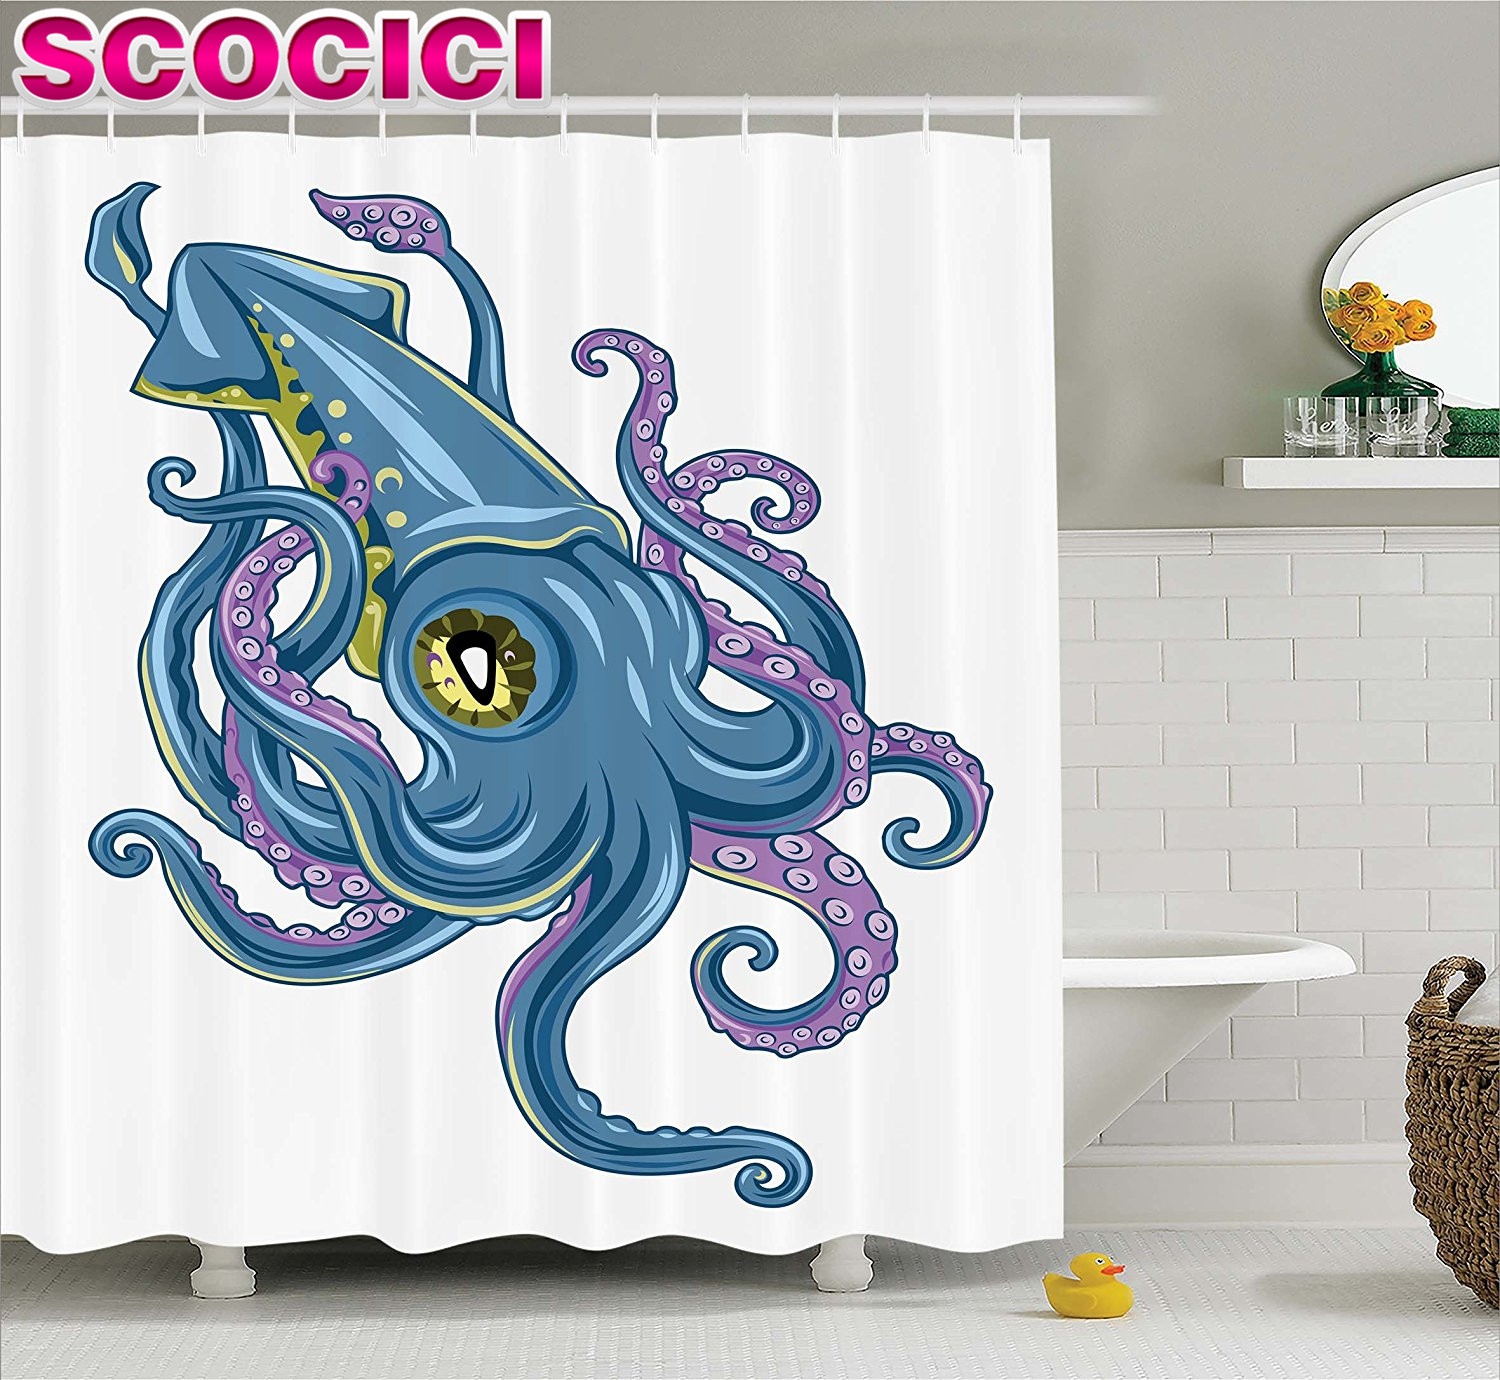 Kraken shower curtain - Kraken Decor Shower Curtain Mythical Squid Swimming Tentacles Cuttlefish Fin Marine Life Graphic Print Fabric Bathroom Decor Set